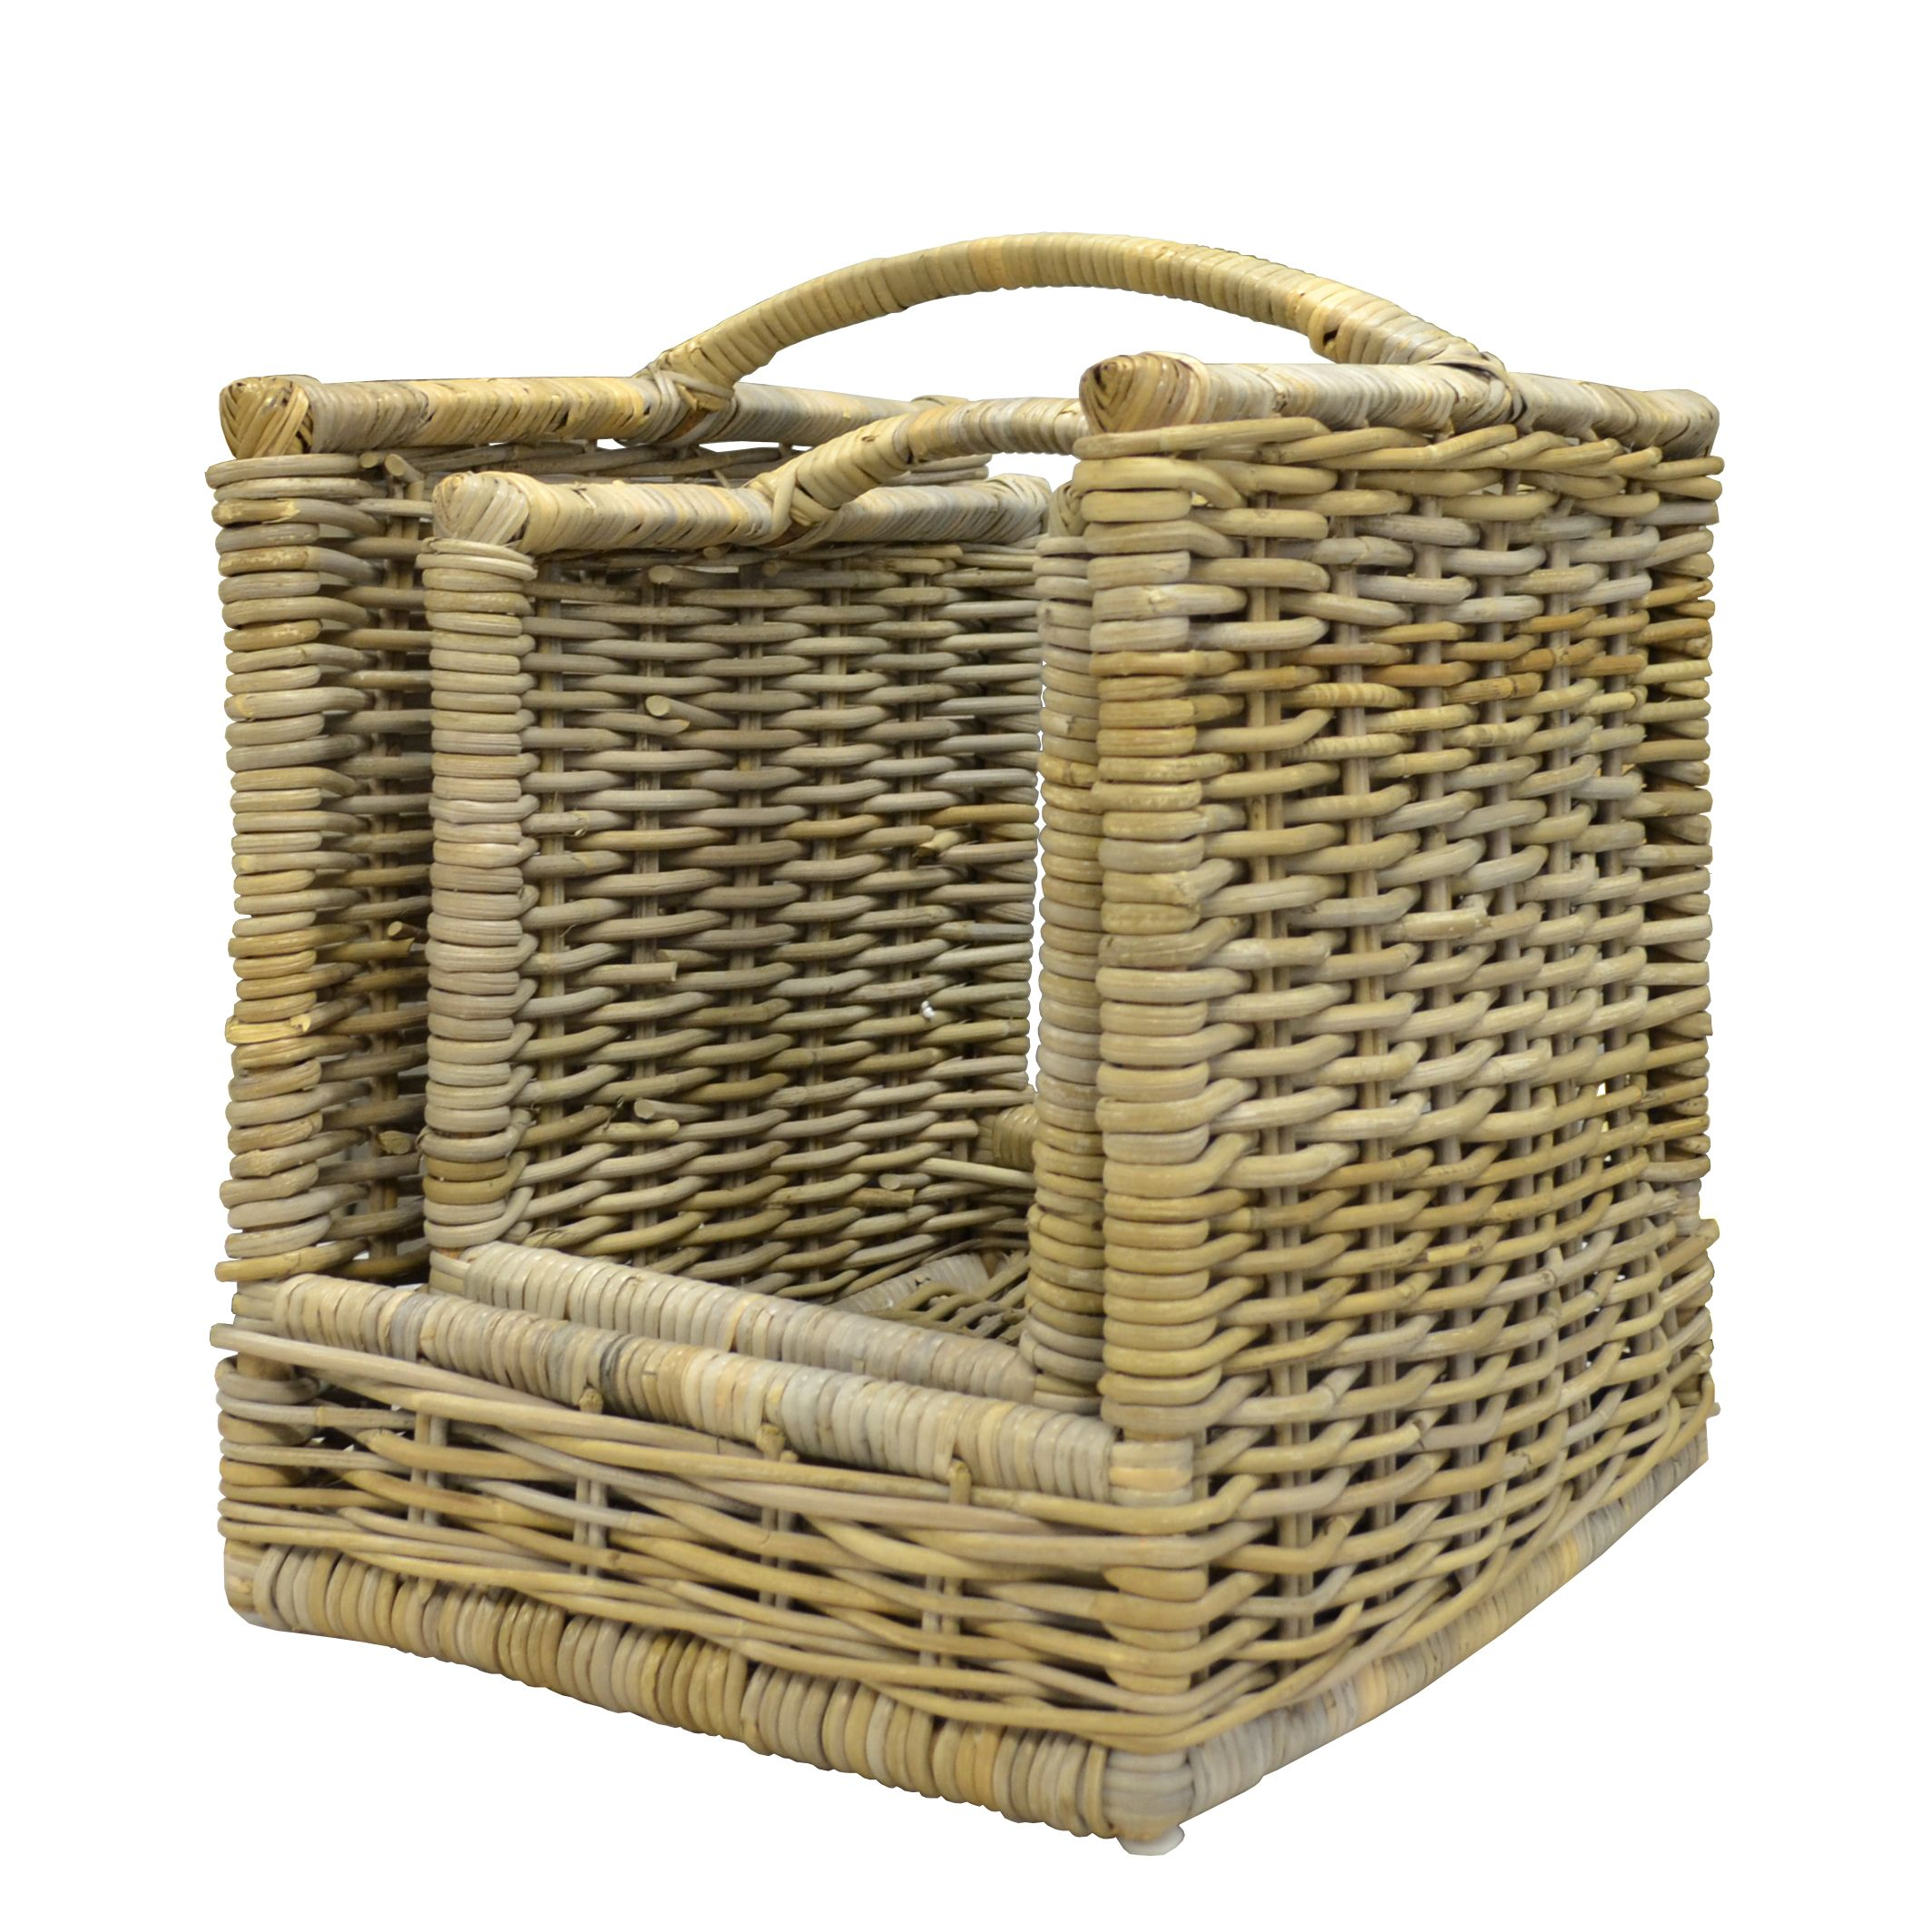 Log basket or storage for your magazines??  View our full range of accessories www.multiyork.co.uk/accessories